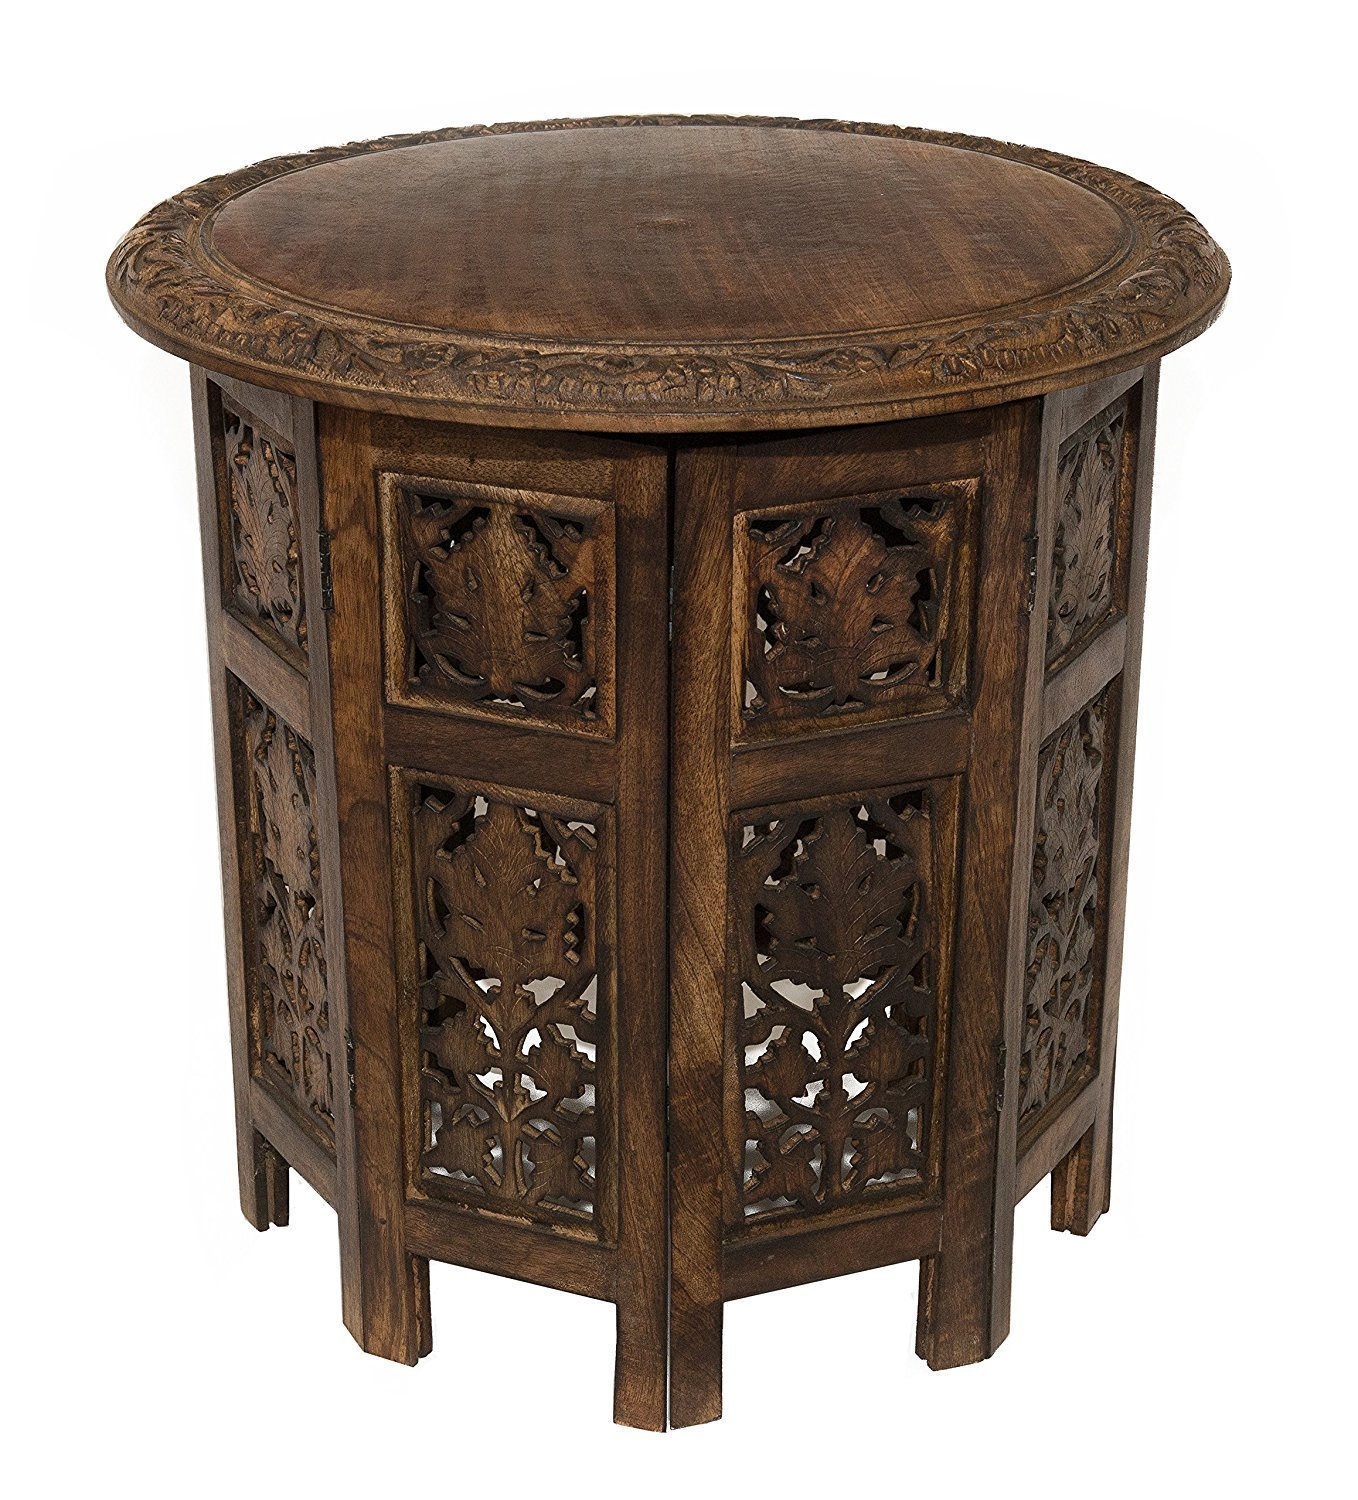 artesia solid wood hand carved rajasthan folding accent tables coffee table inch round top high brown kitchen dining white with drawers weathered teak ethan allen furniture side